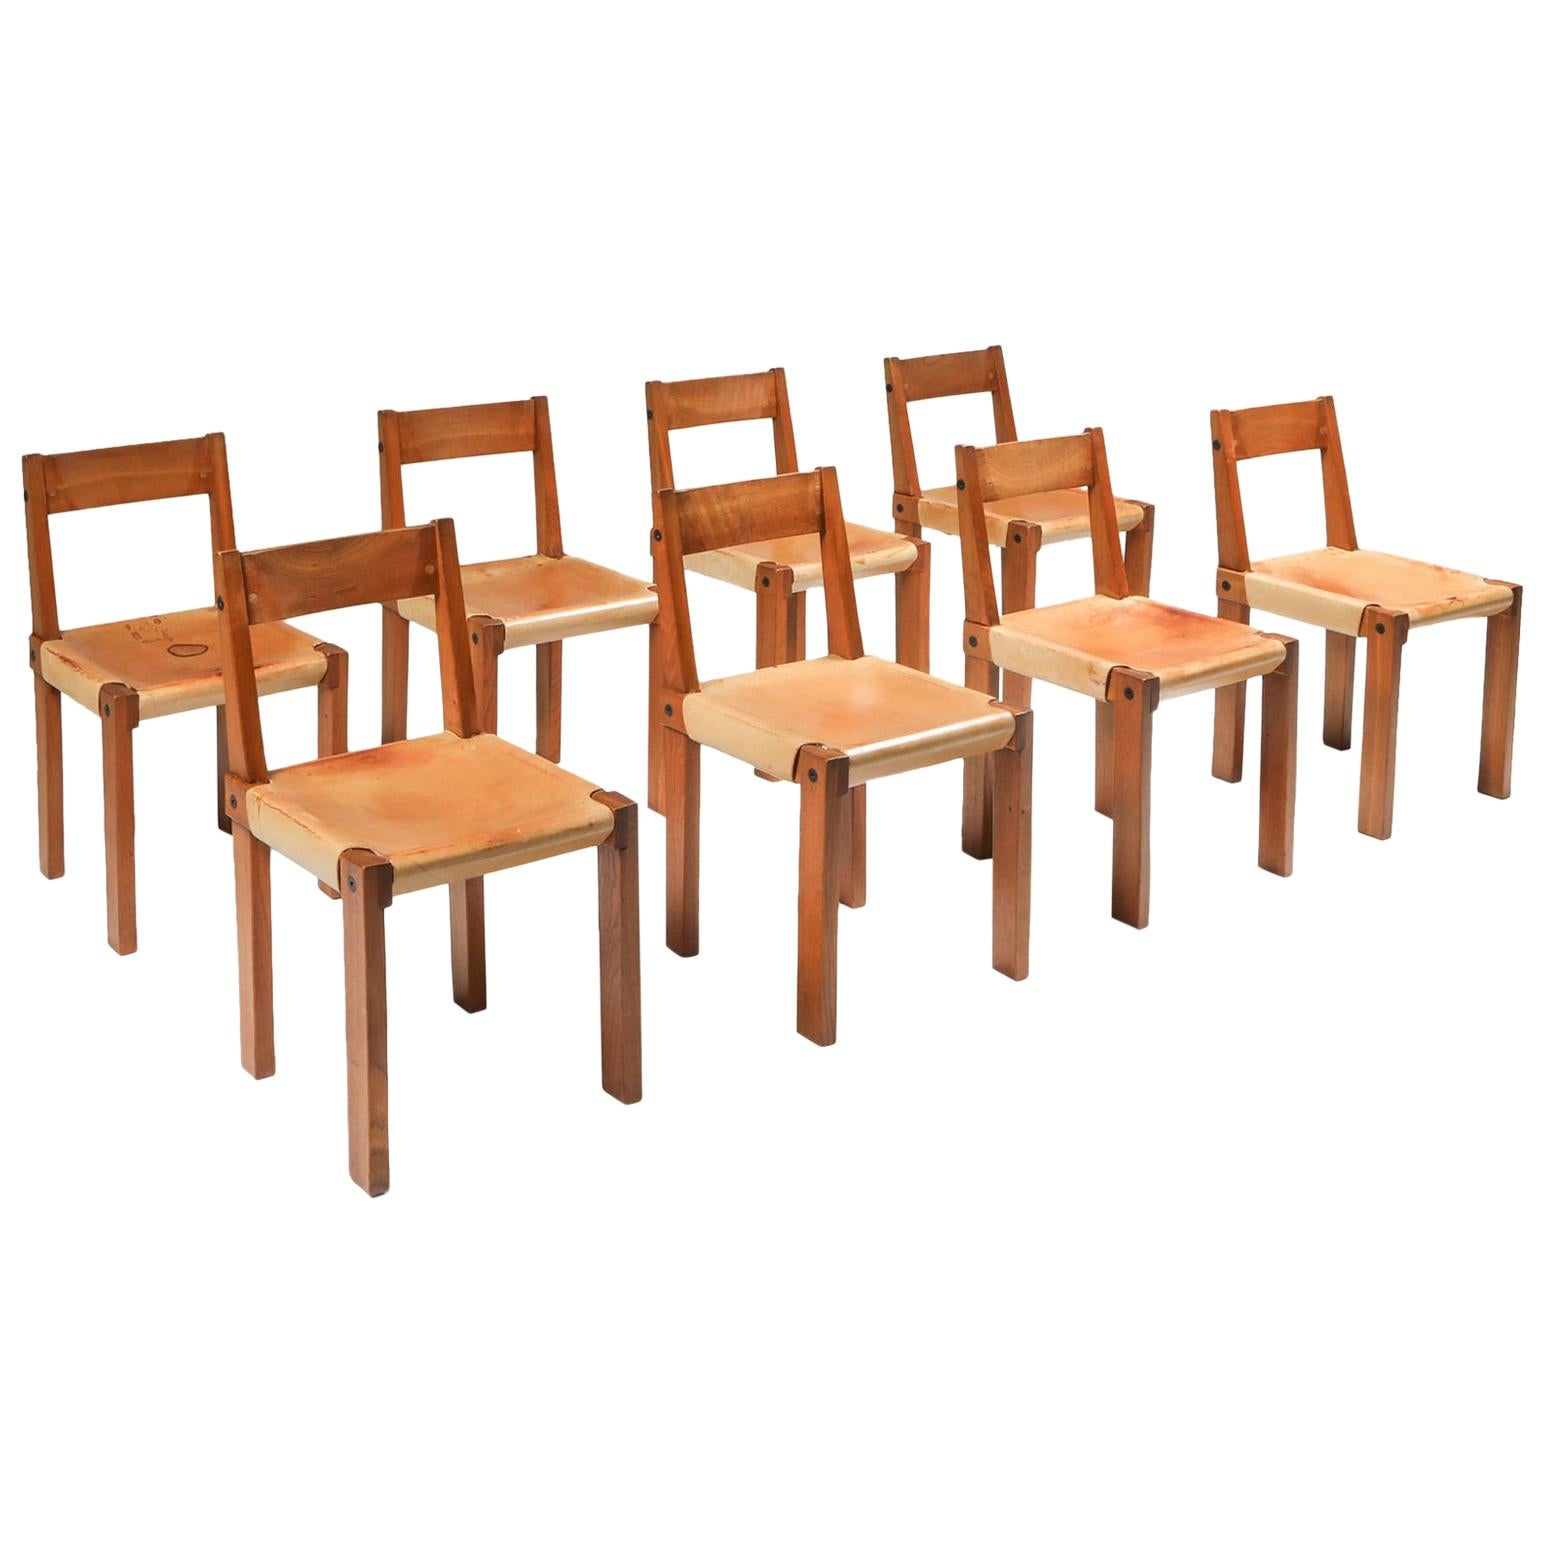 Pierre Chapo 'S24' Chairs in Solid Elm and Natural Leather